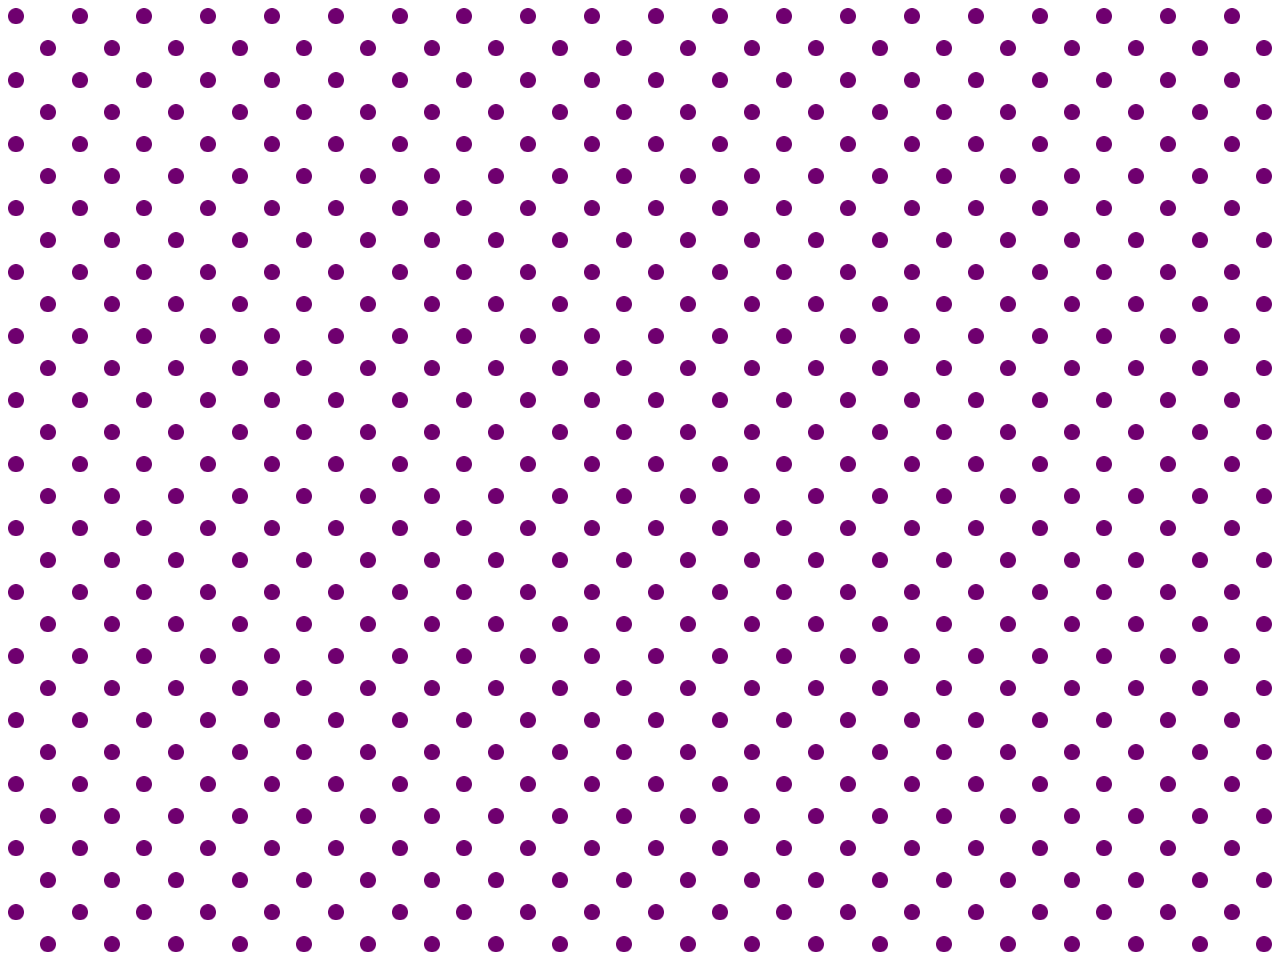 Dot background png. All sizes polka dotted